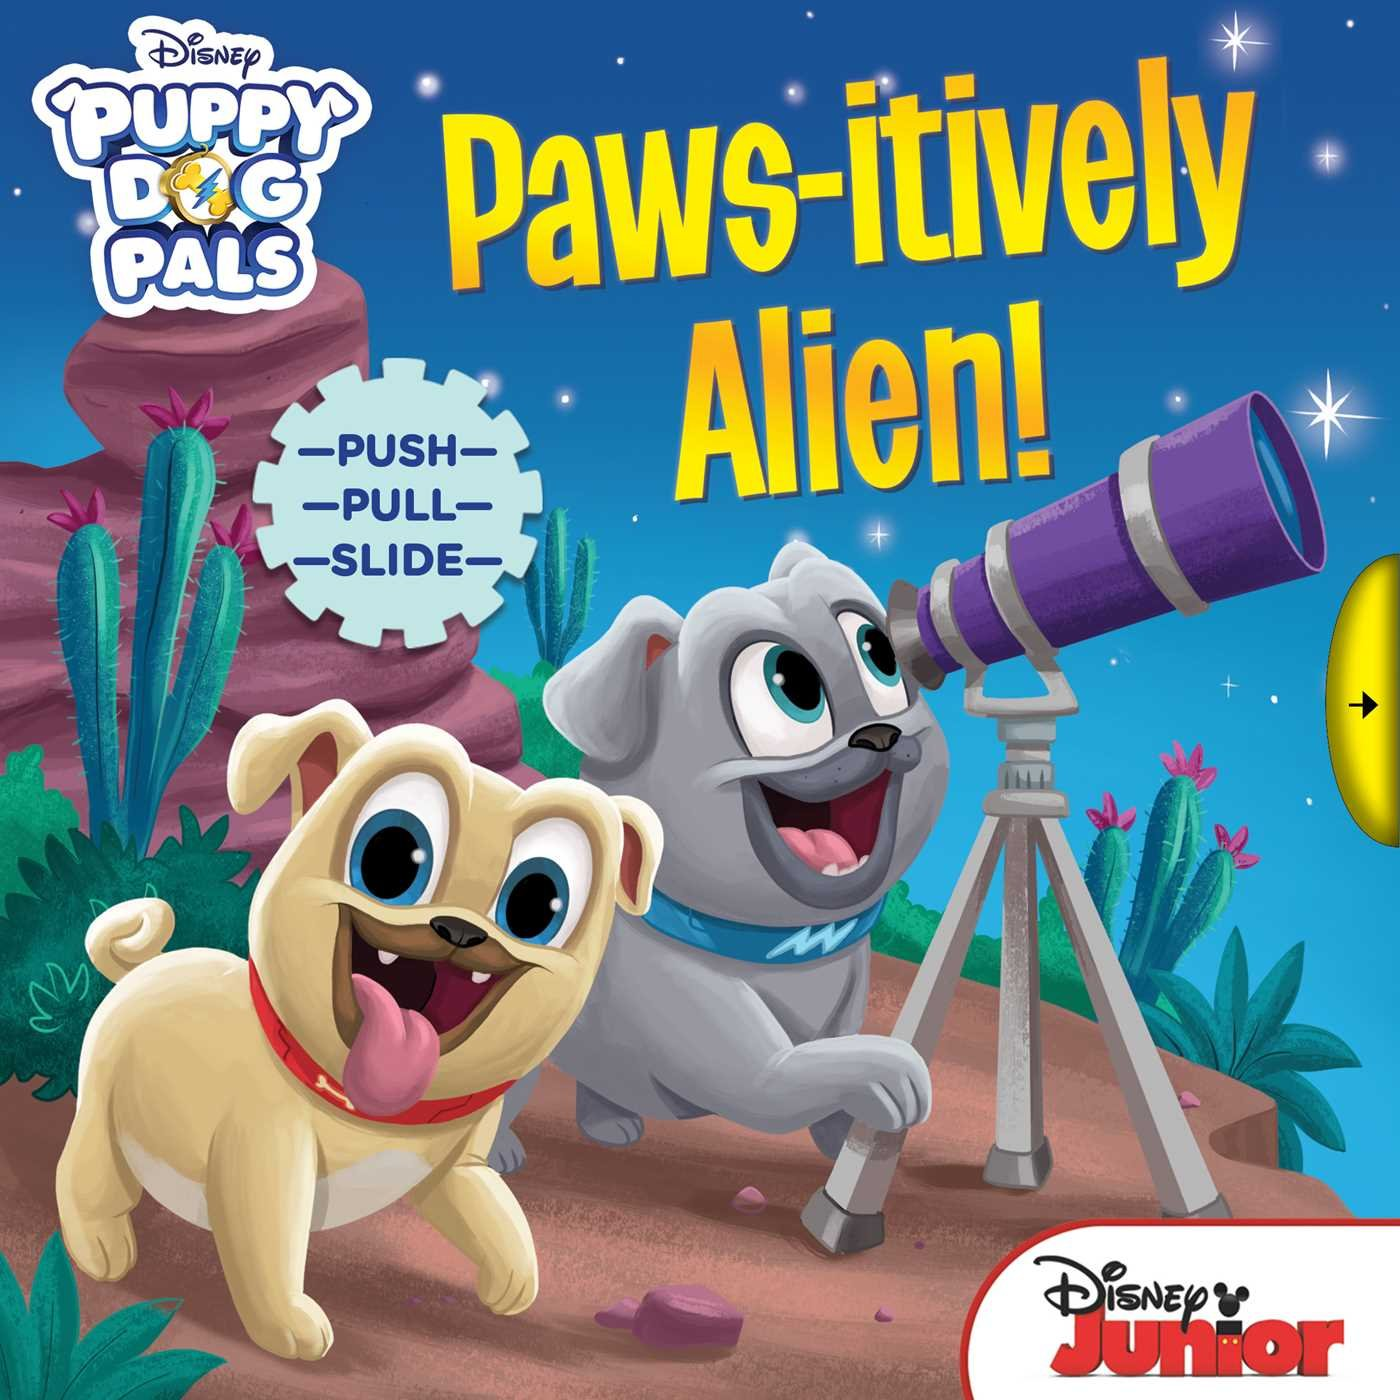 Disney Puppy Dog Pals: Paws-itively Alien! Board book – September 11, 2018